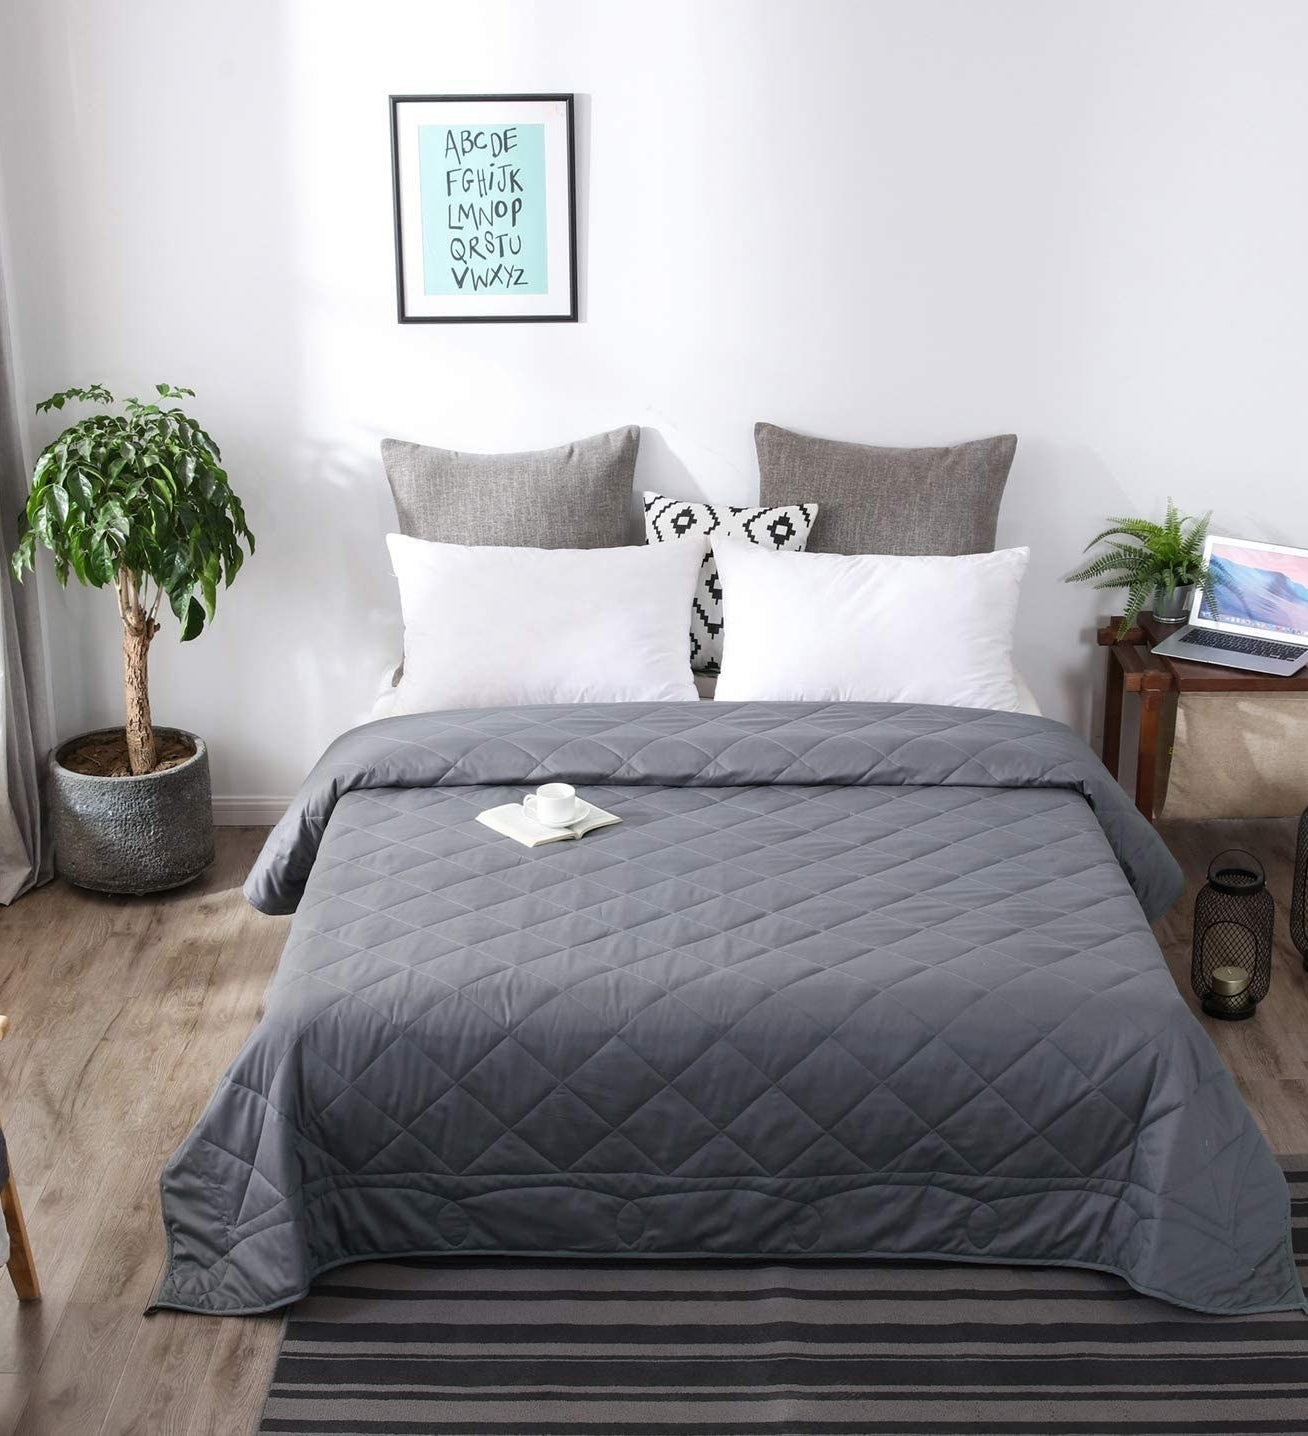 Queen size weighted blanket in gray